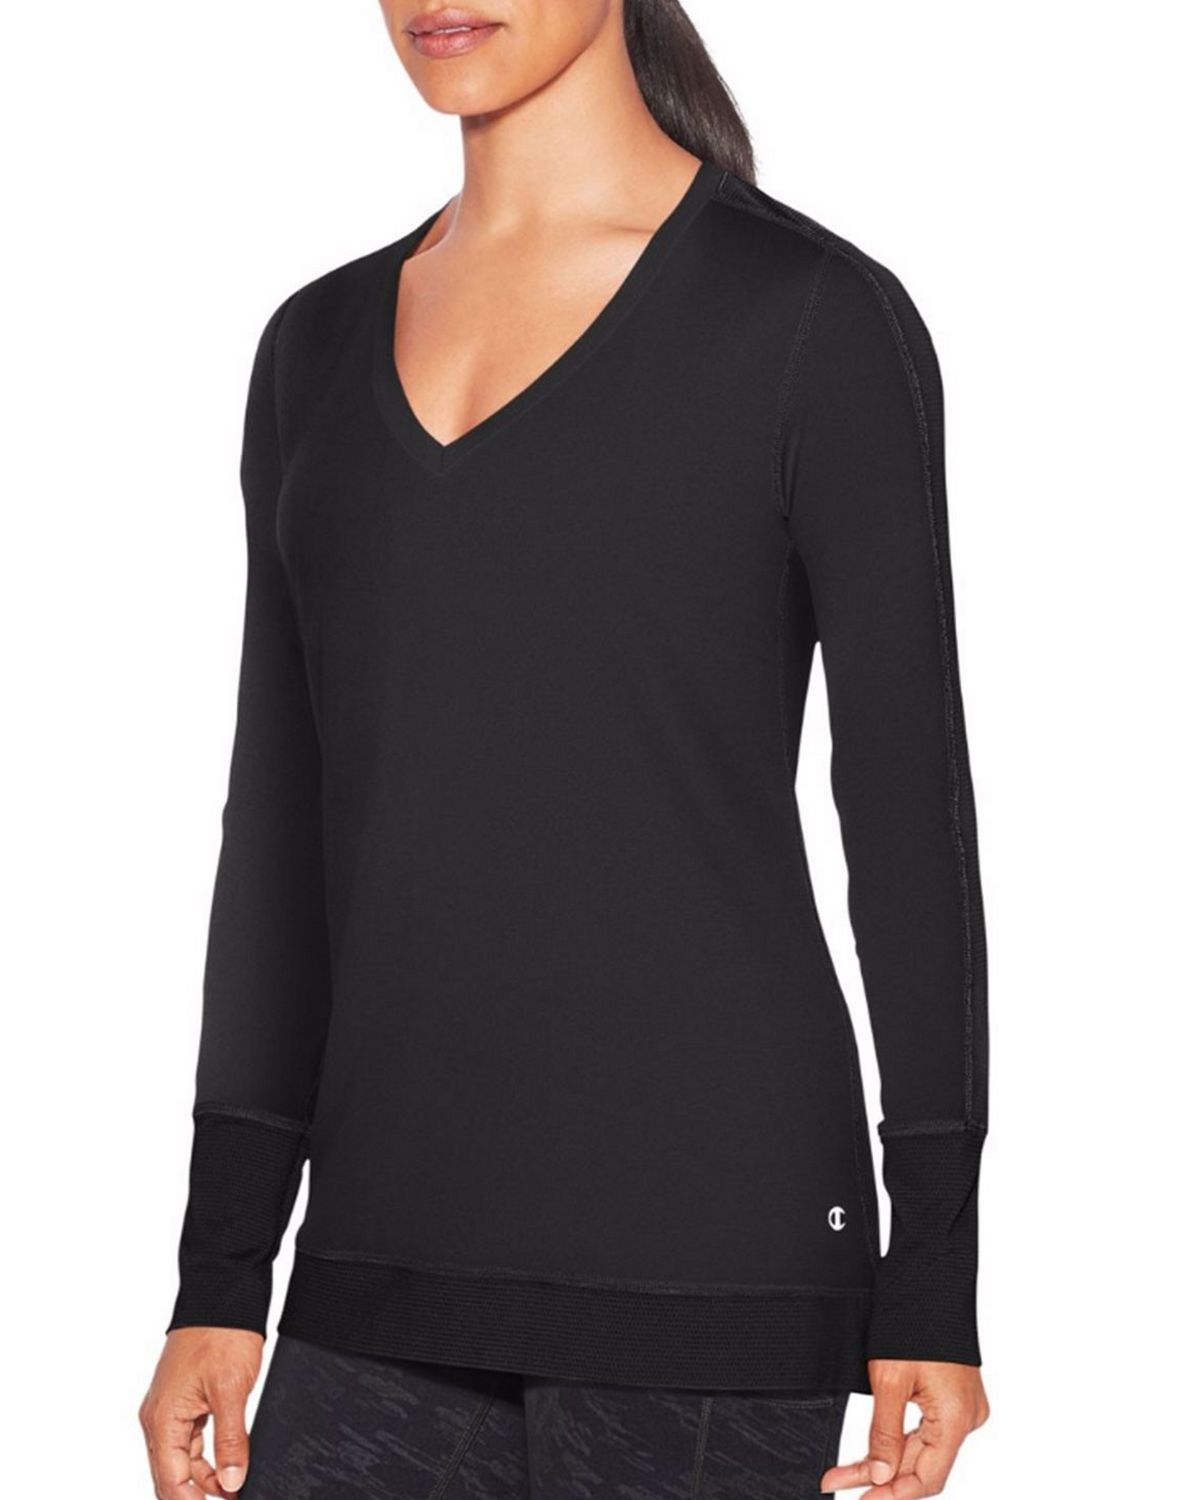 Champion W9914 Womens Long Sleeve Tee - Black - XS W9914